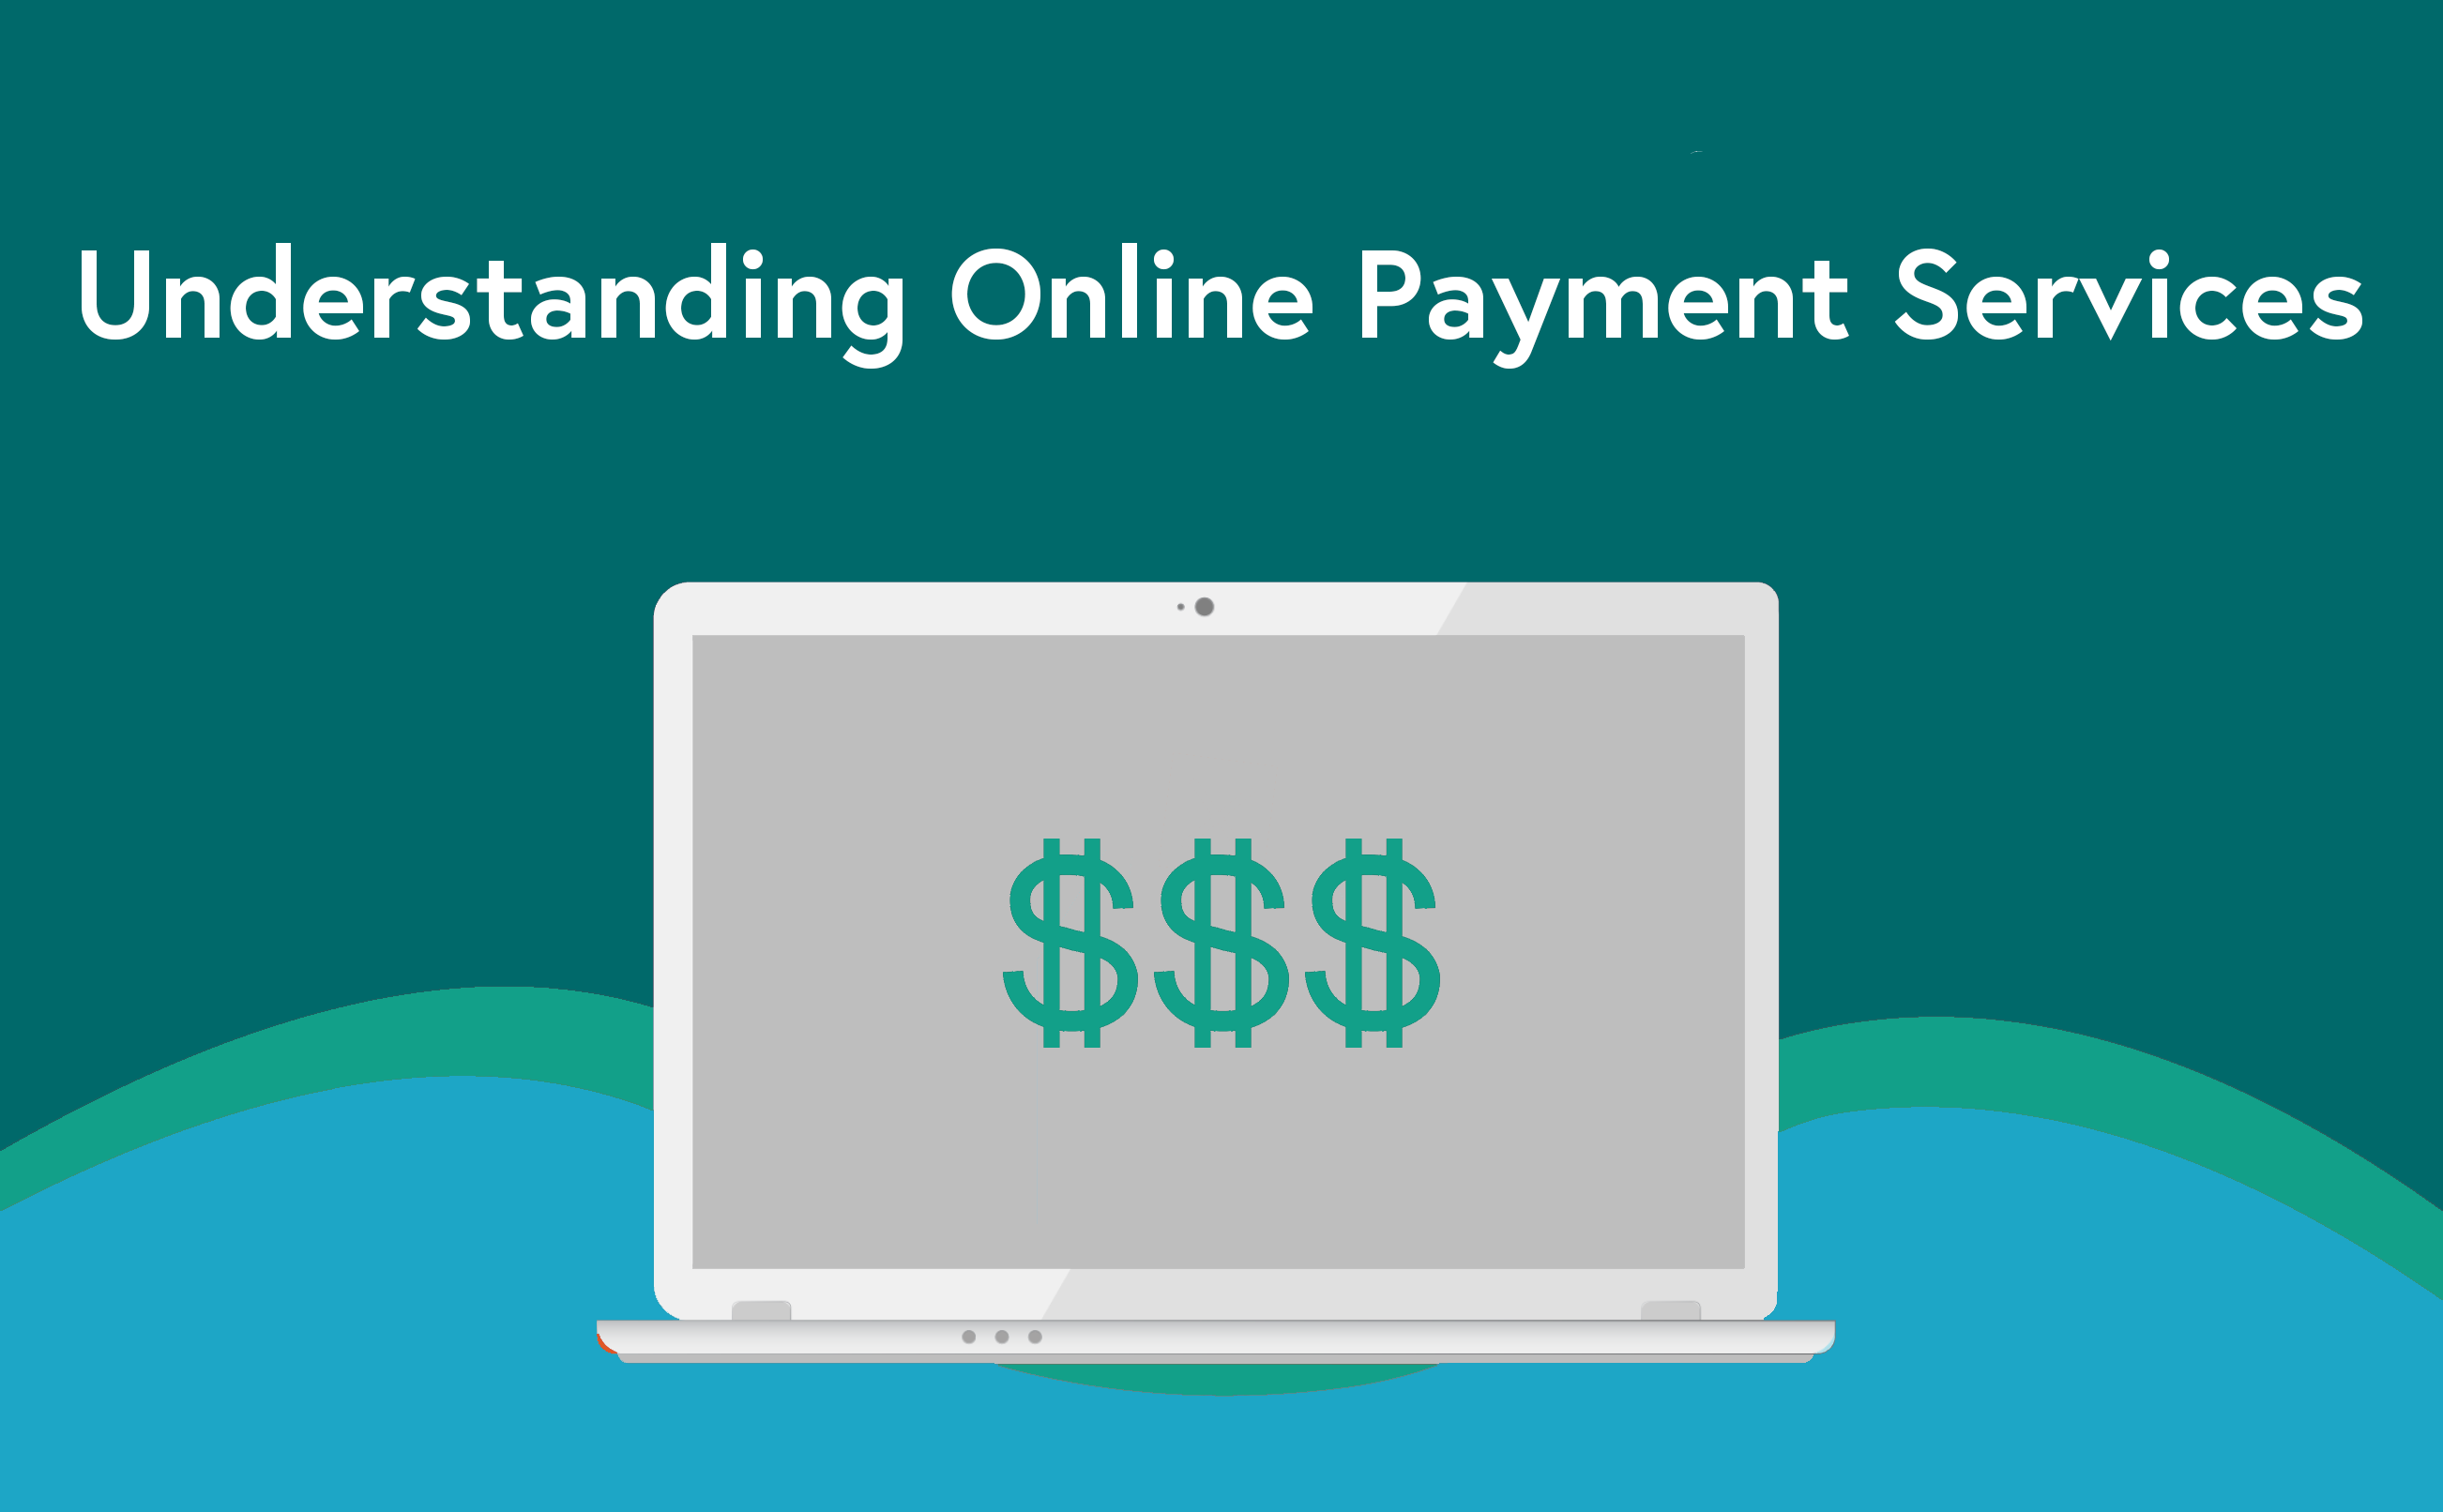 Understanding Online Payment Services + 11 Payment Providers